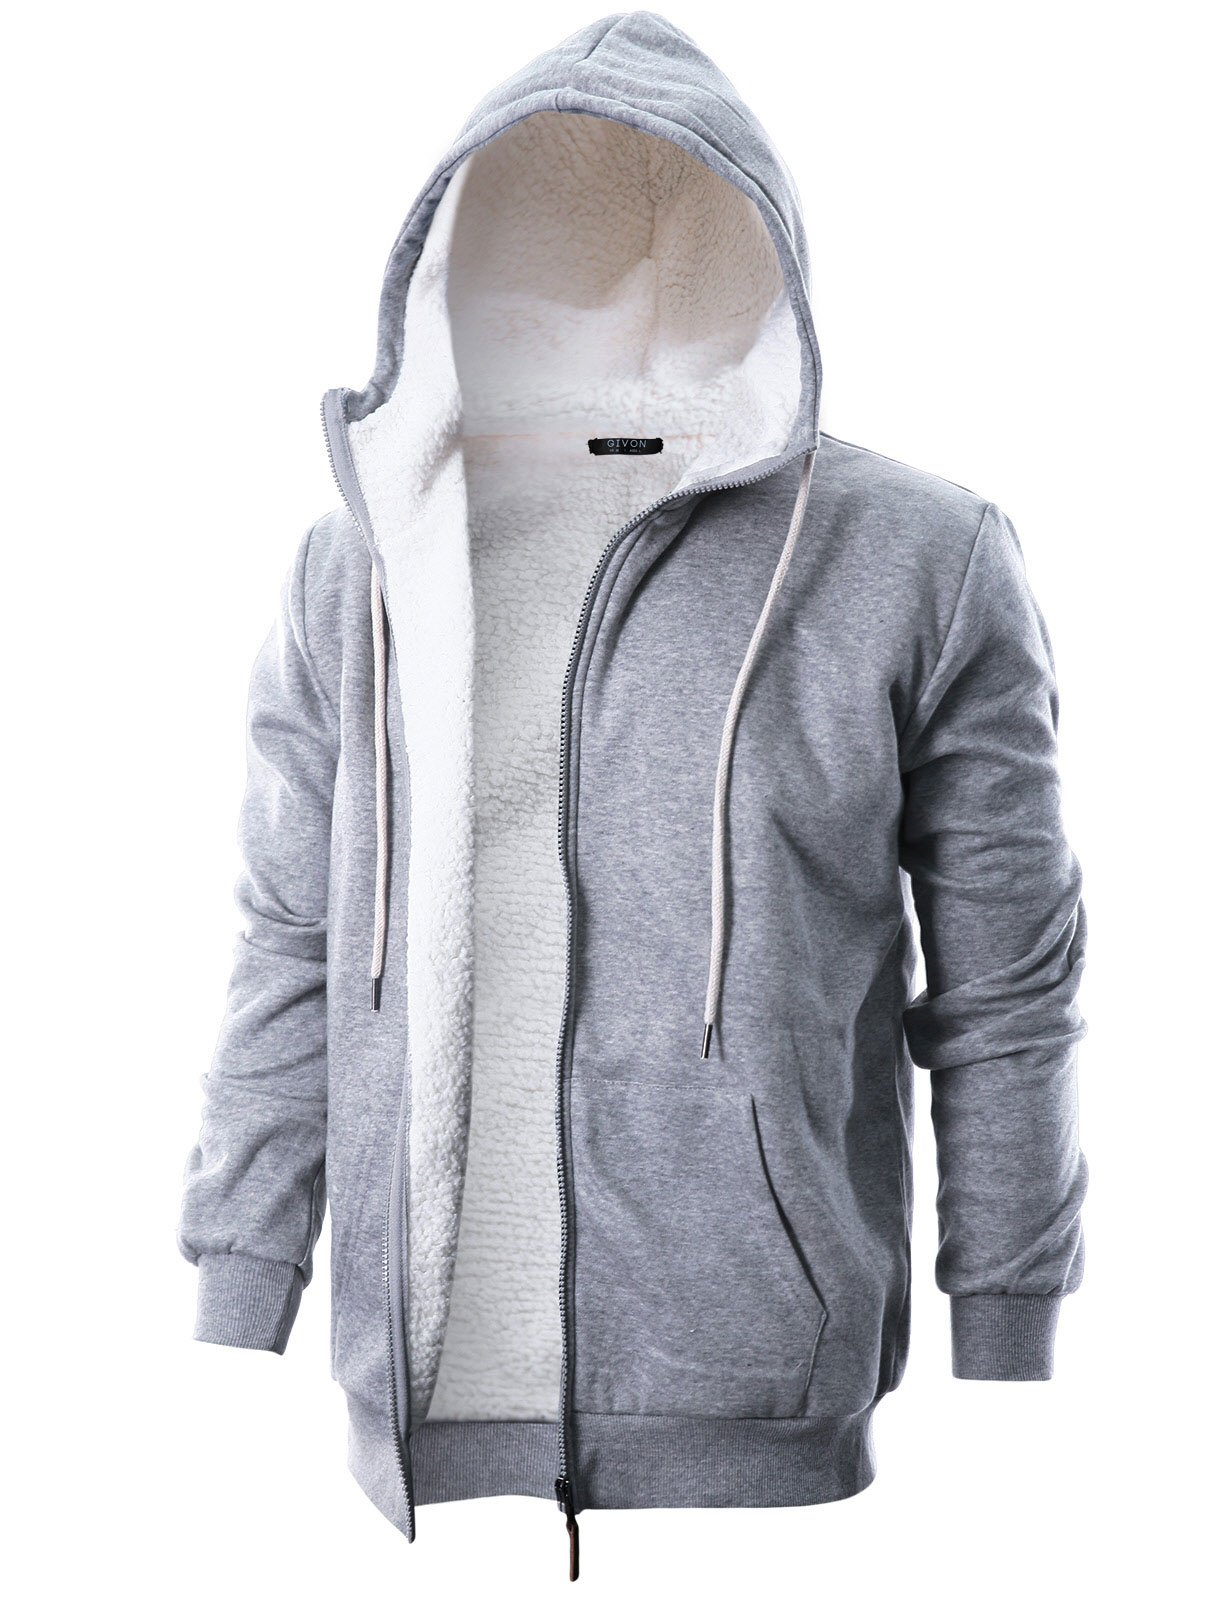 GIVON Mens Slim Fit Long Sleeve Thermal Faux Fur Zip-up Hoodie With Kanga Pocket/DCF016-GREY-M by GIVON